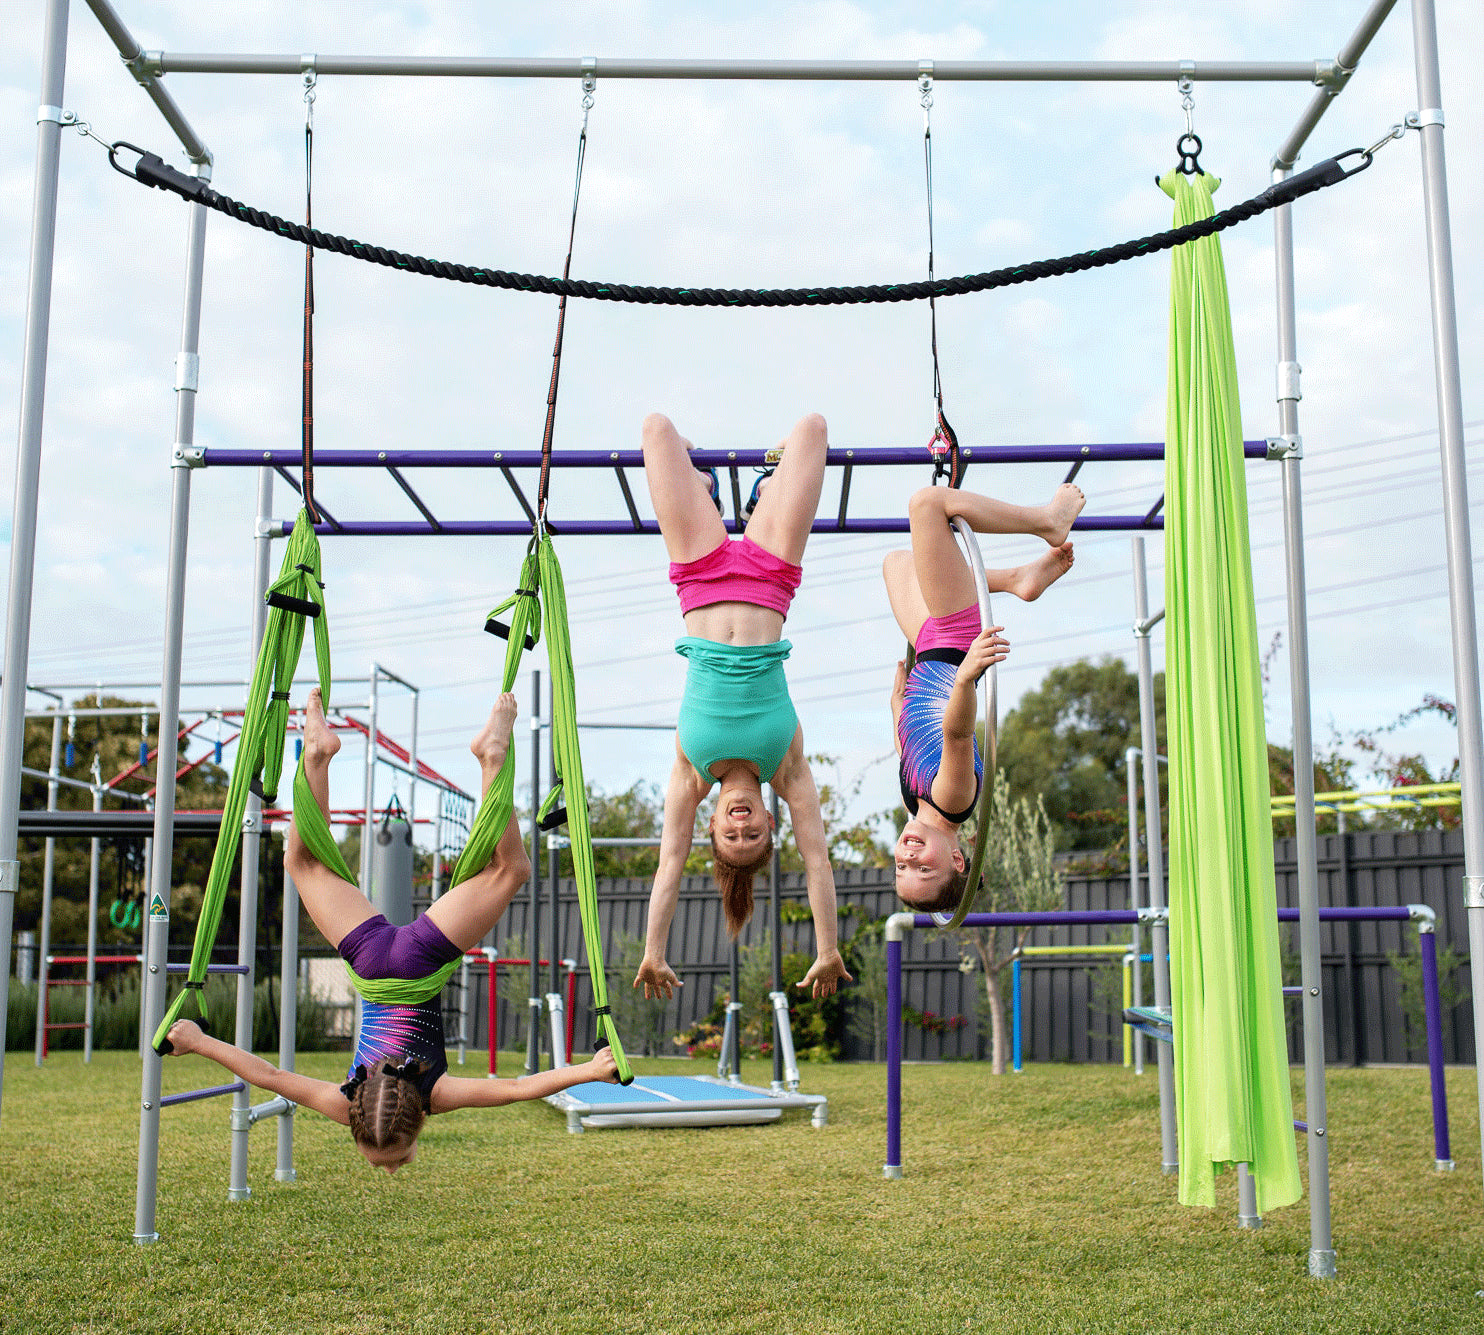 Add On More Fun to Your Funky Monkey Bars